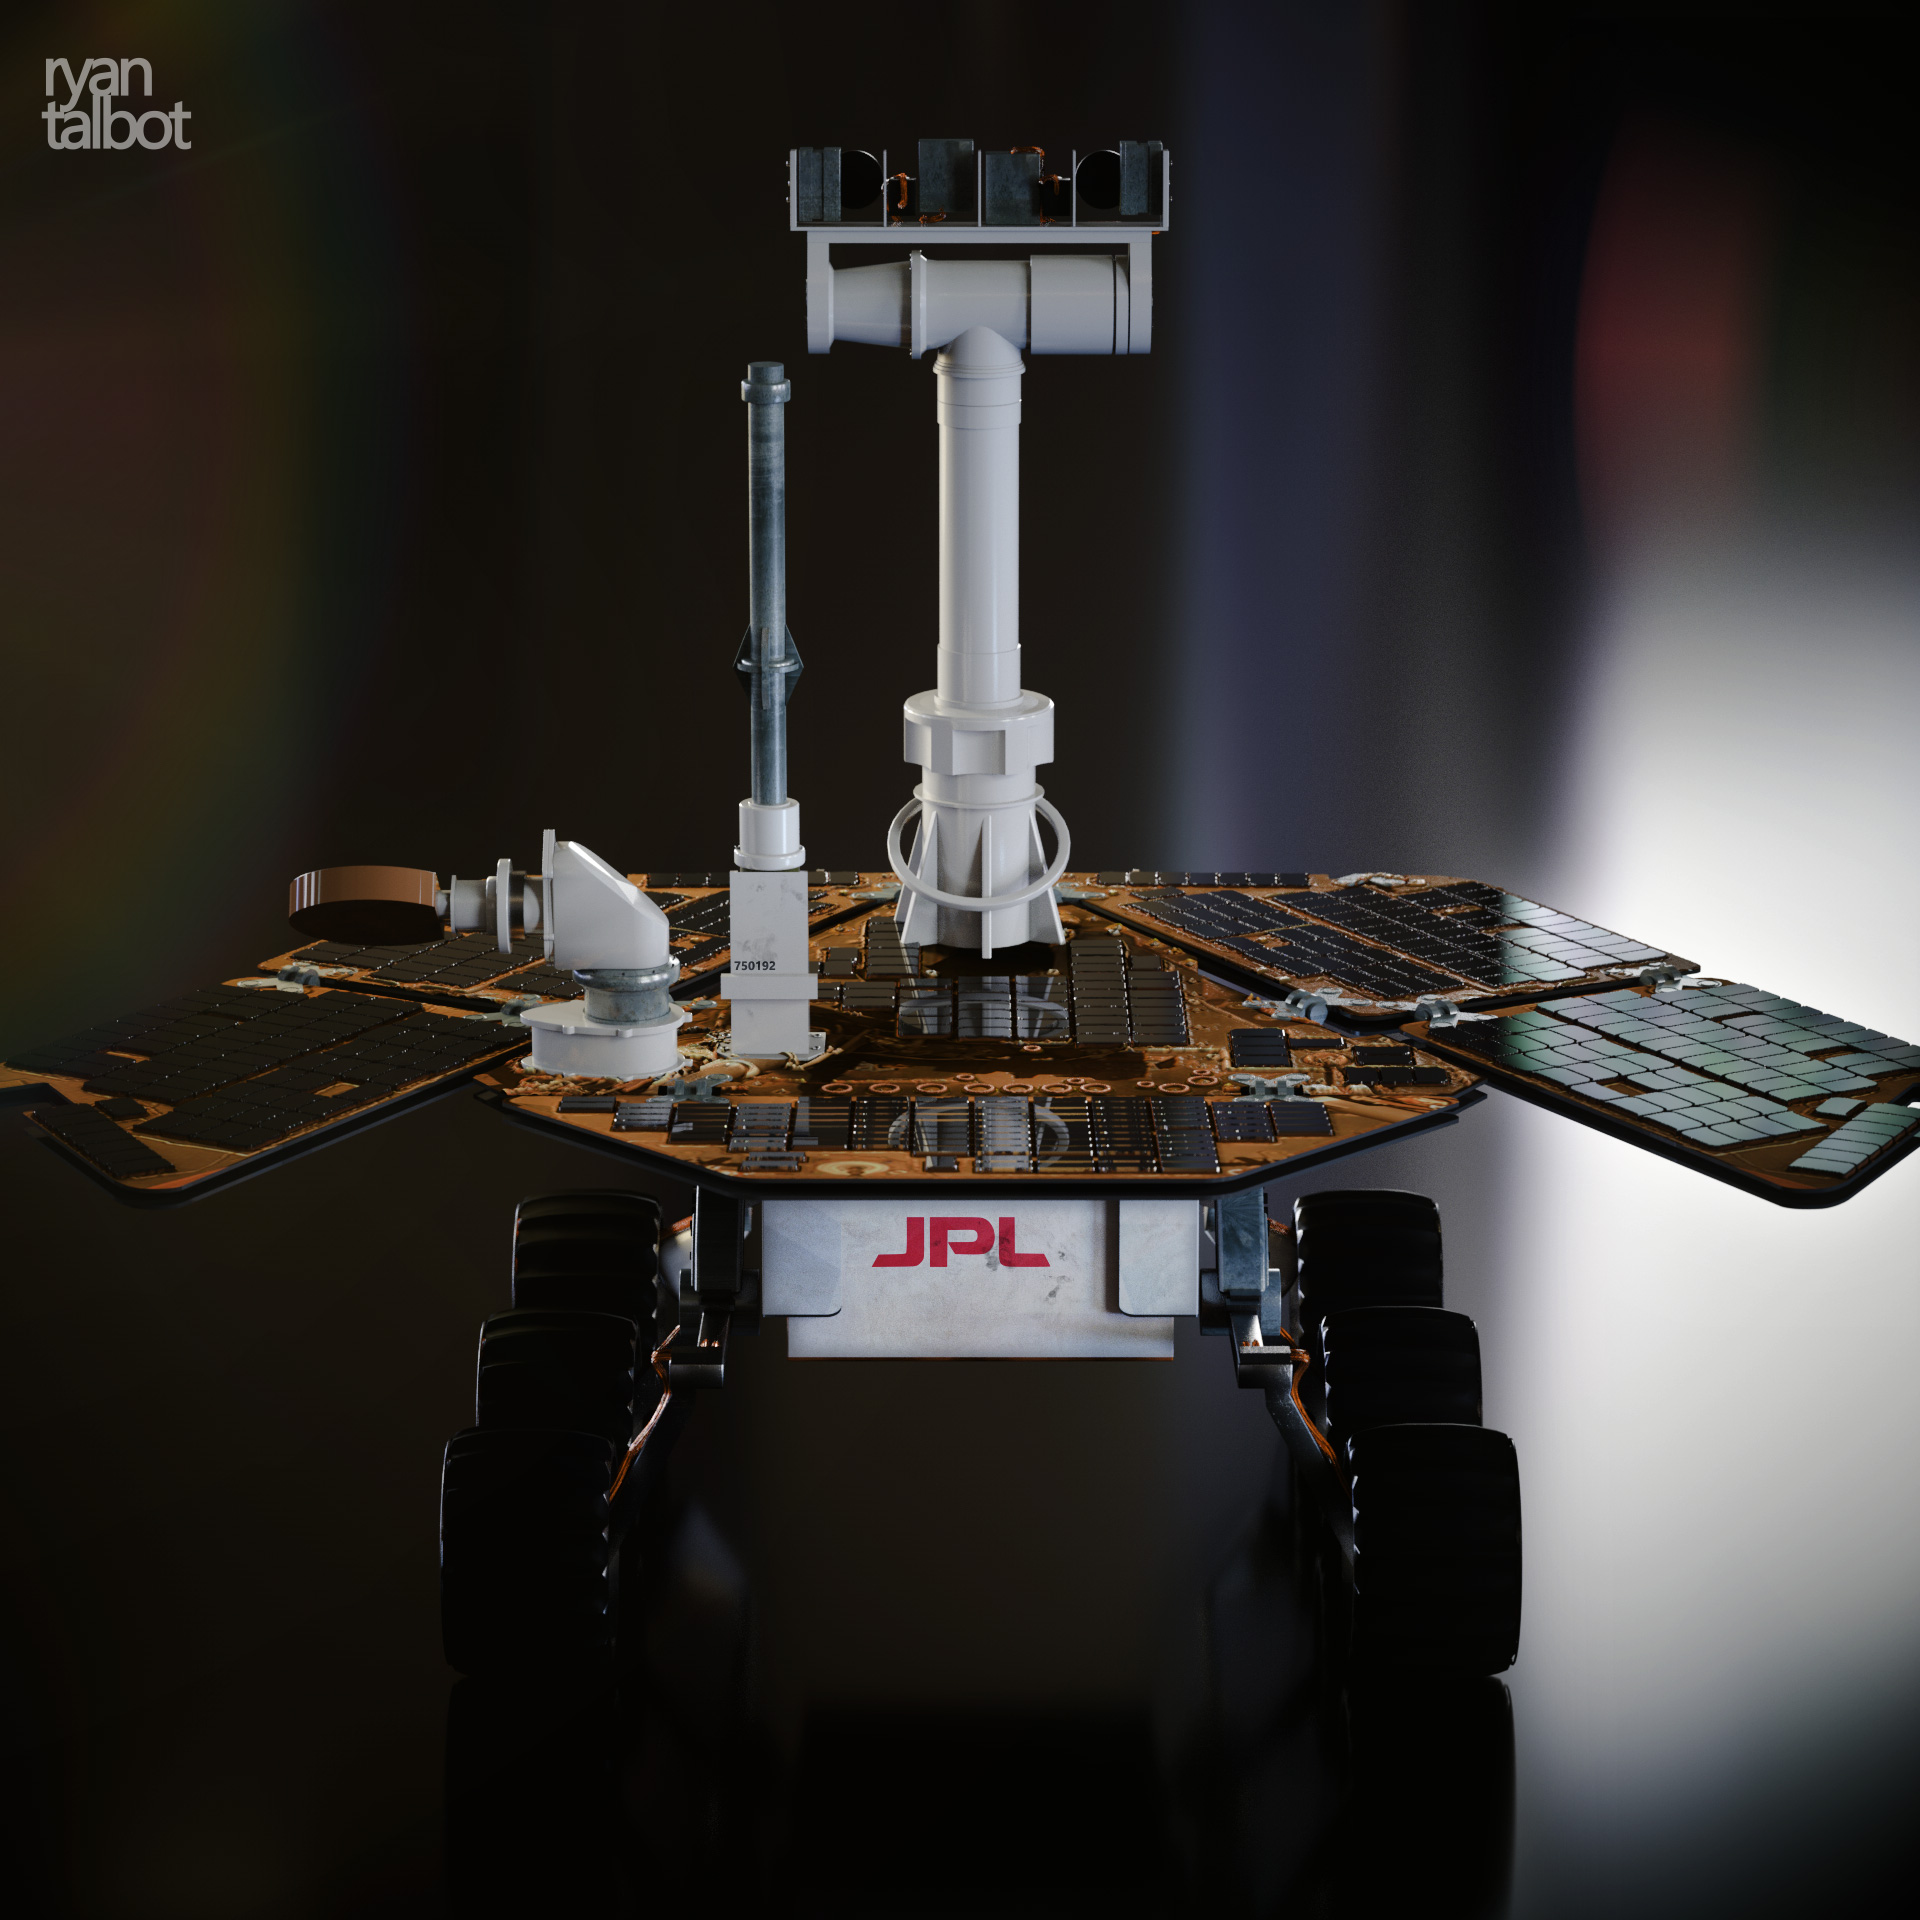 Mars Rover Back Textured Woo Composite Stamped.jpg